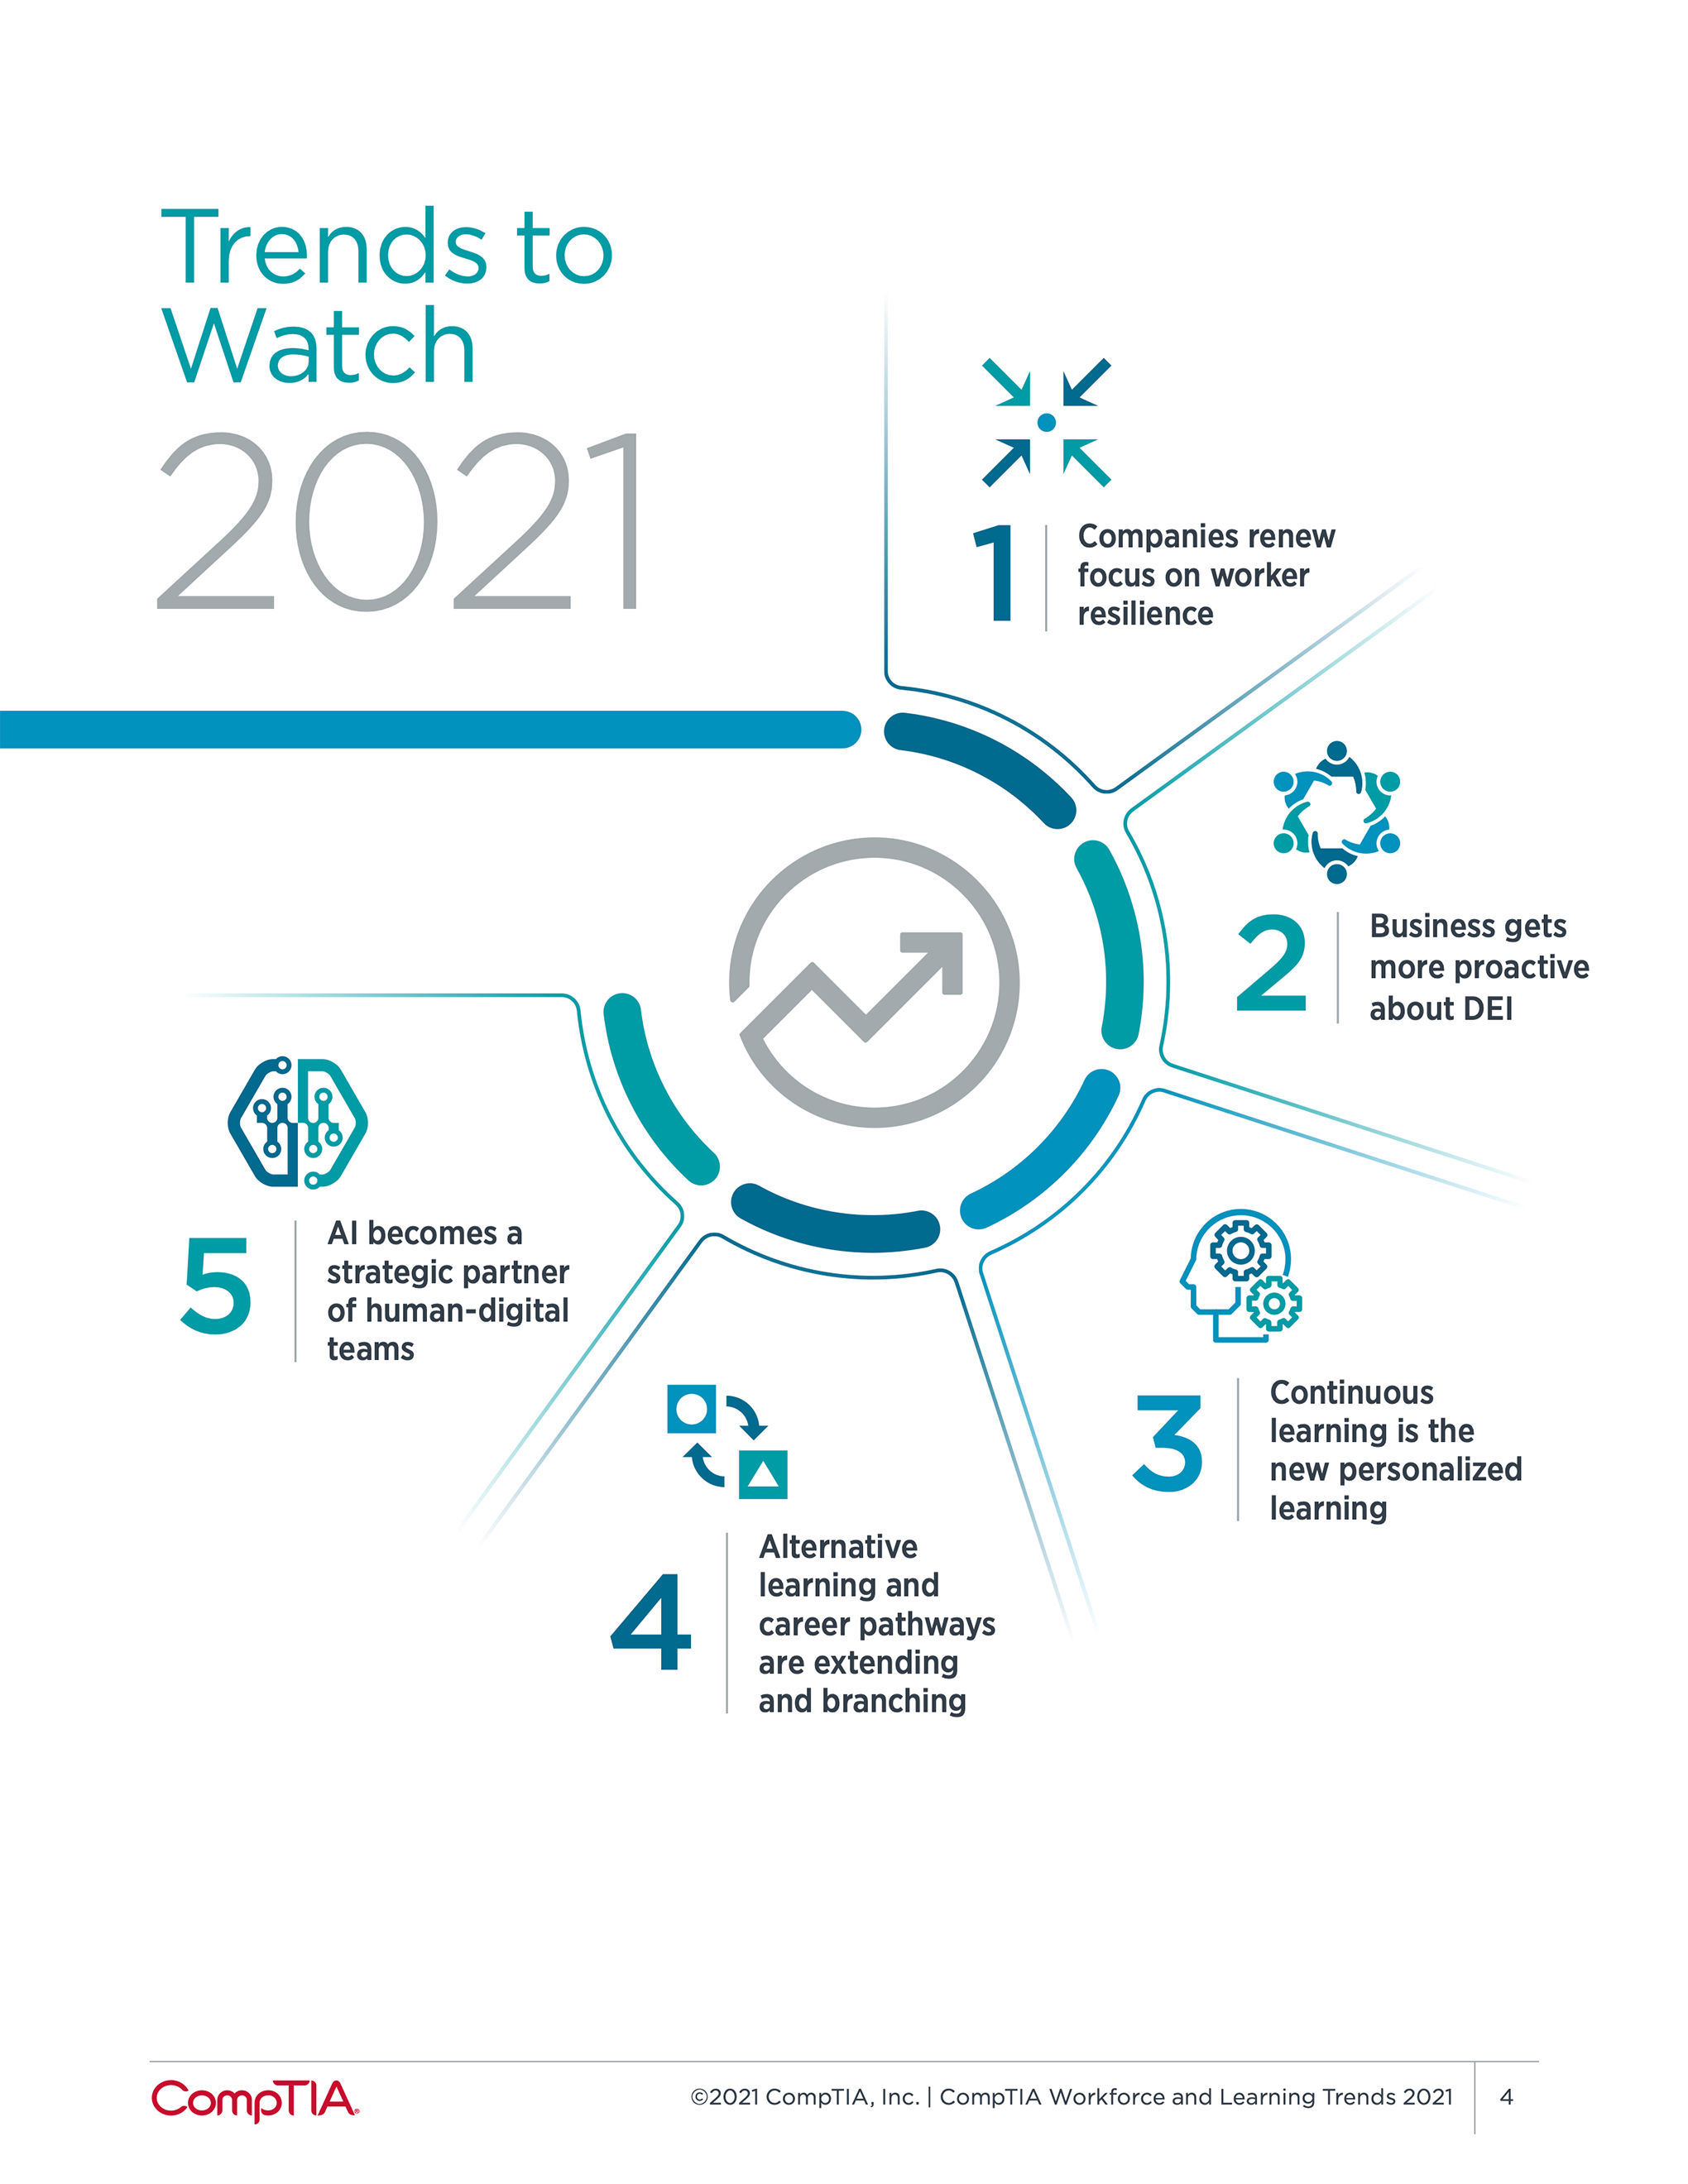 Trends to Watch 2021